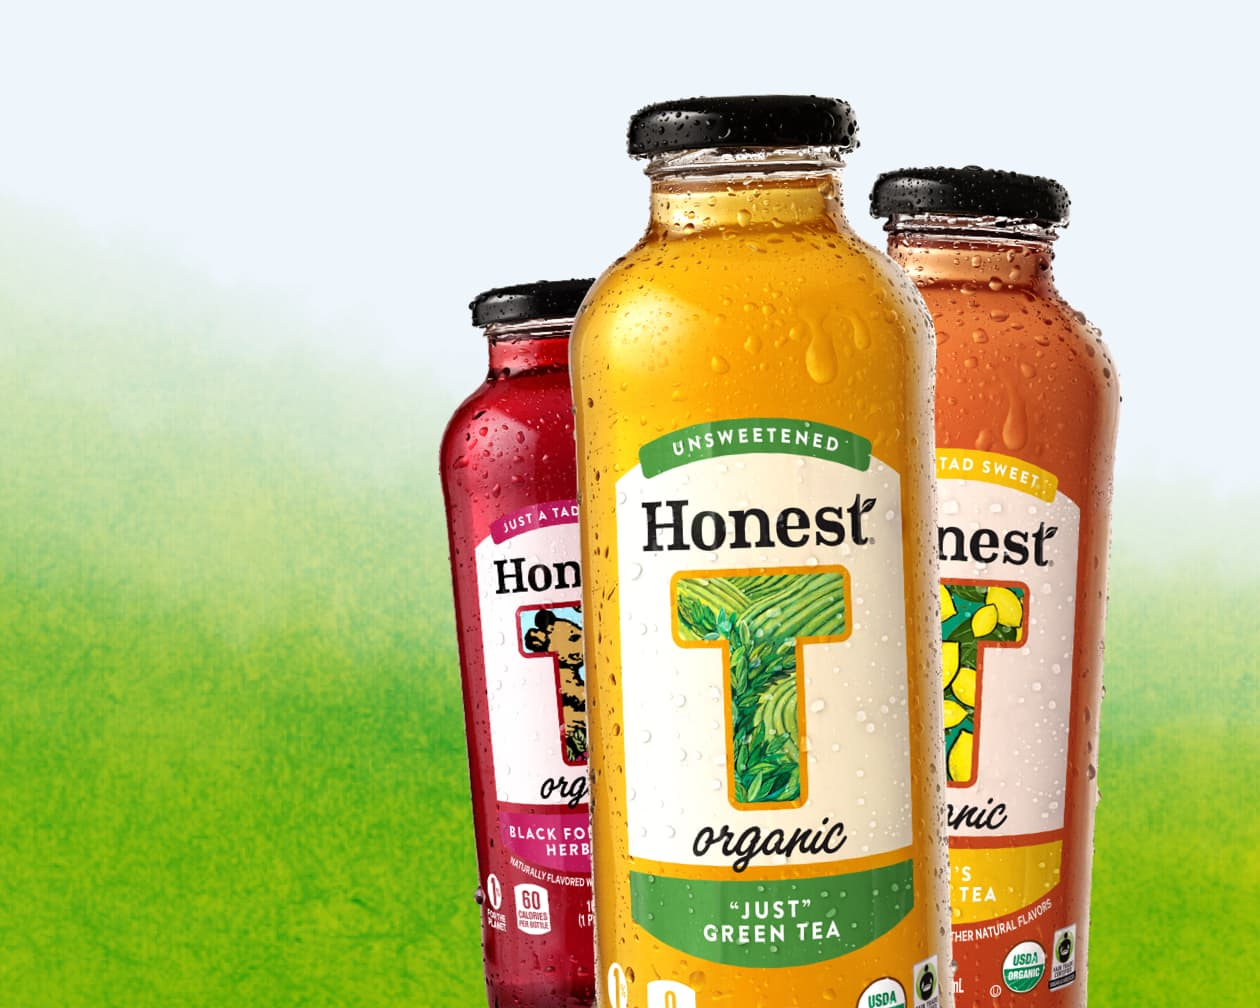 King Design Honest Tea Glass Bottles Case Study